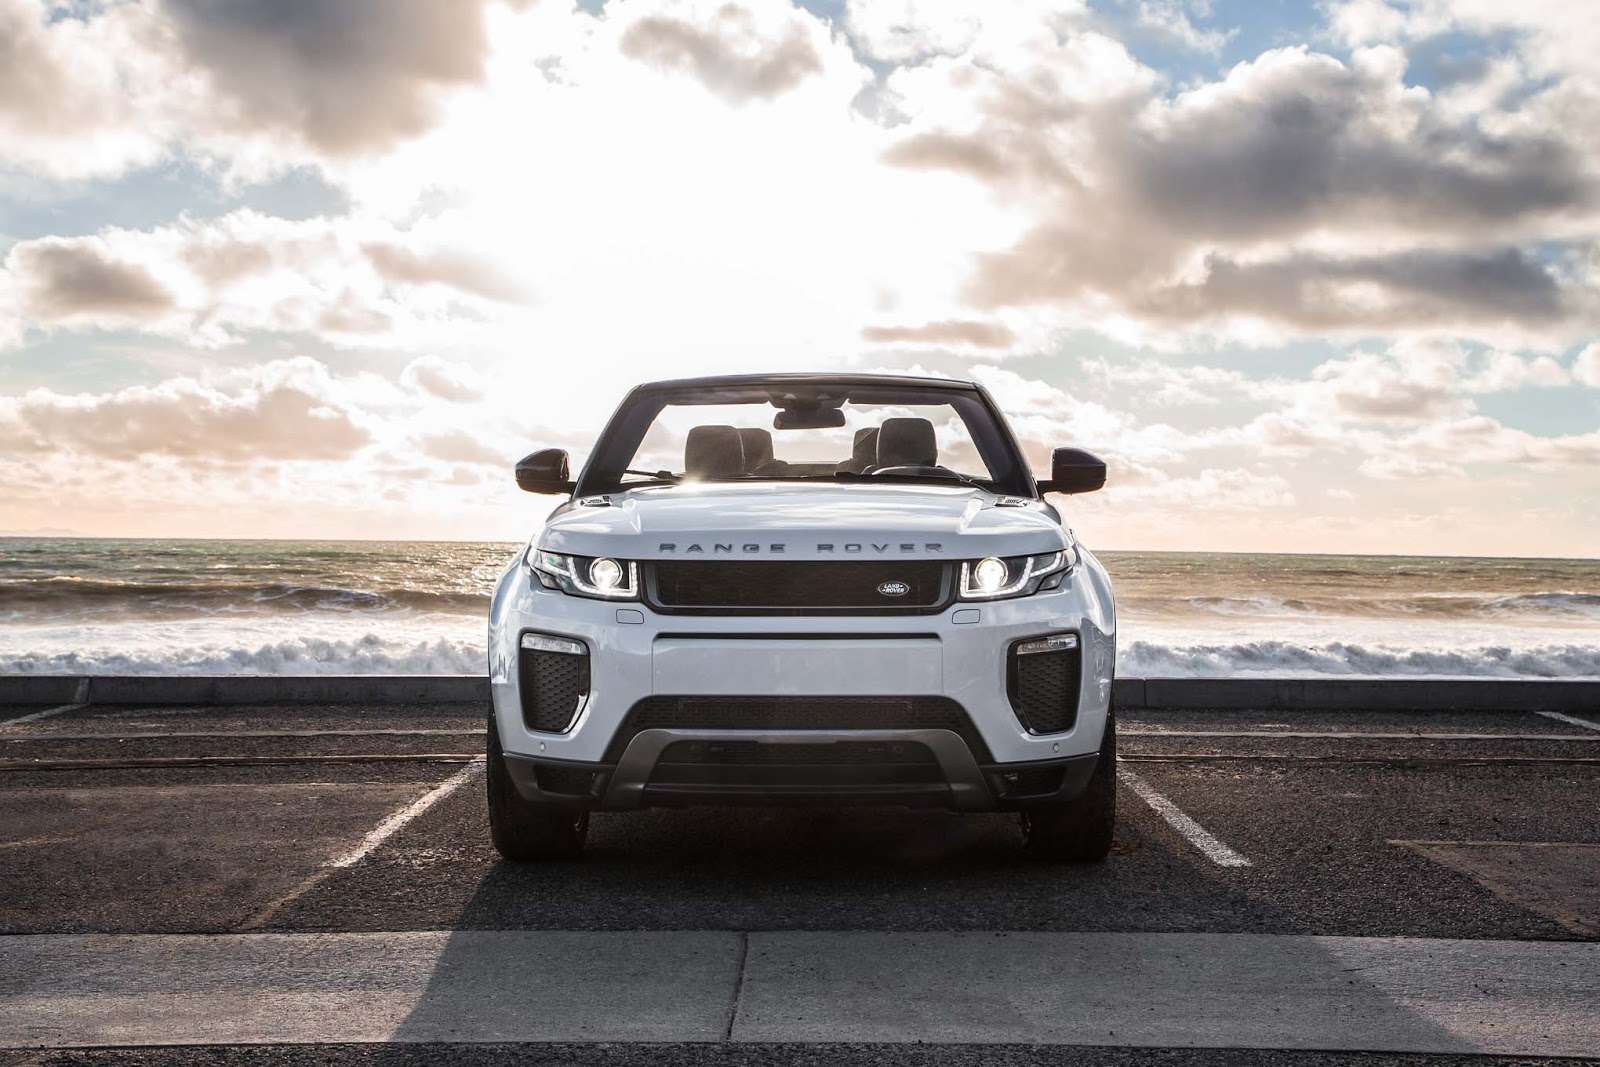 The 2017 Land Rover Range Evoque Is An Ealing Choice For Those Looking Luxurious Go Anywhere Driving Don T Think Of It As A One Dimensional